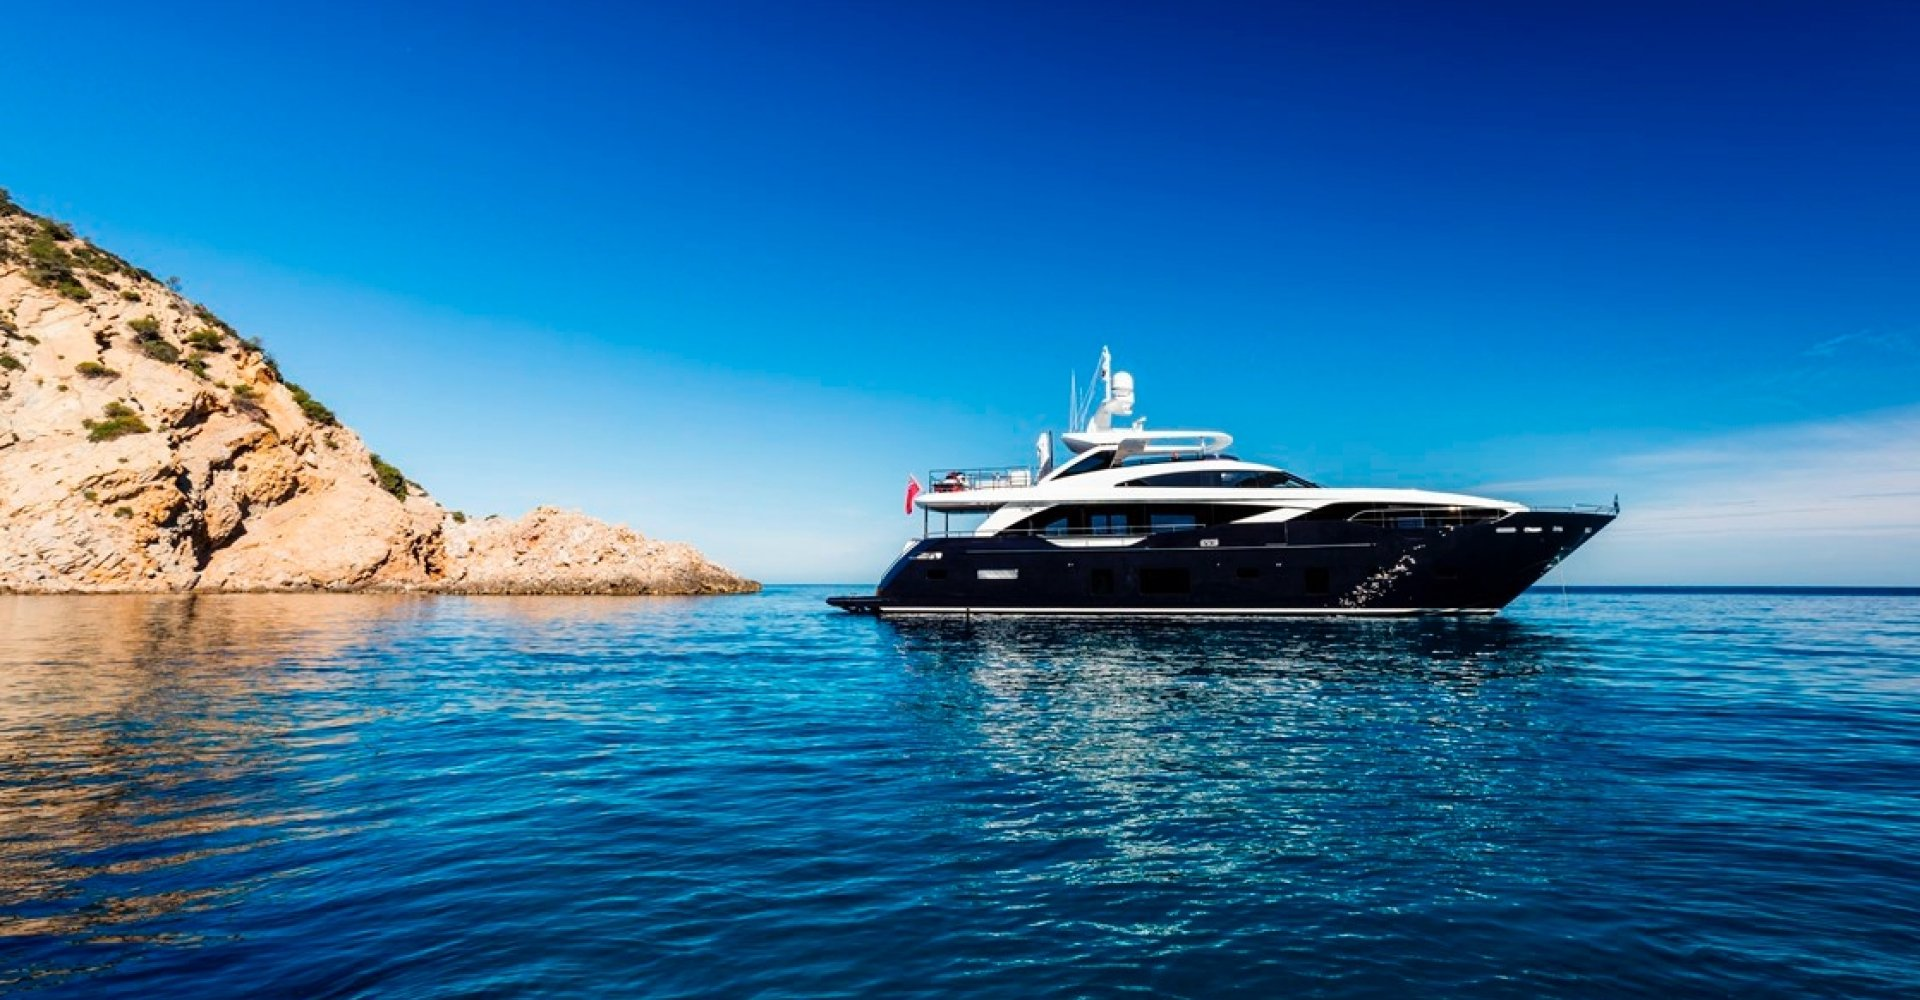 5 Cabins, Owner's cabin on the Main deck, Tender garage...